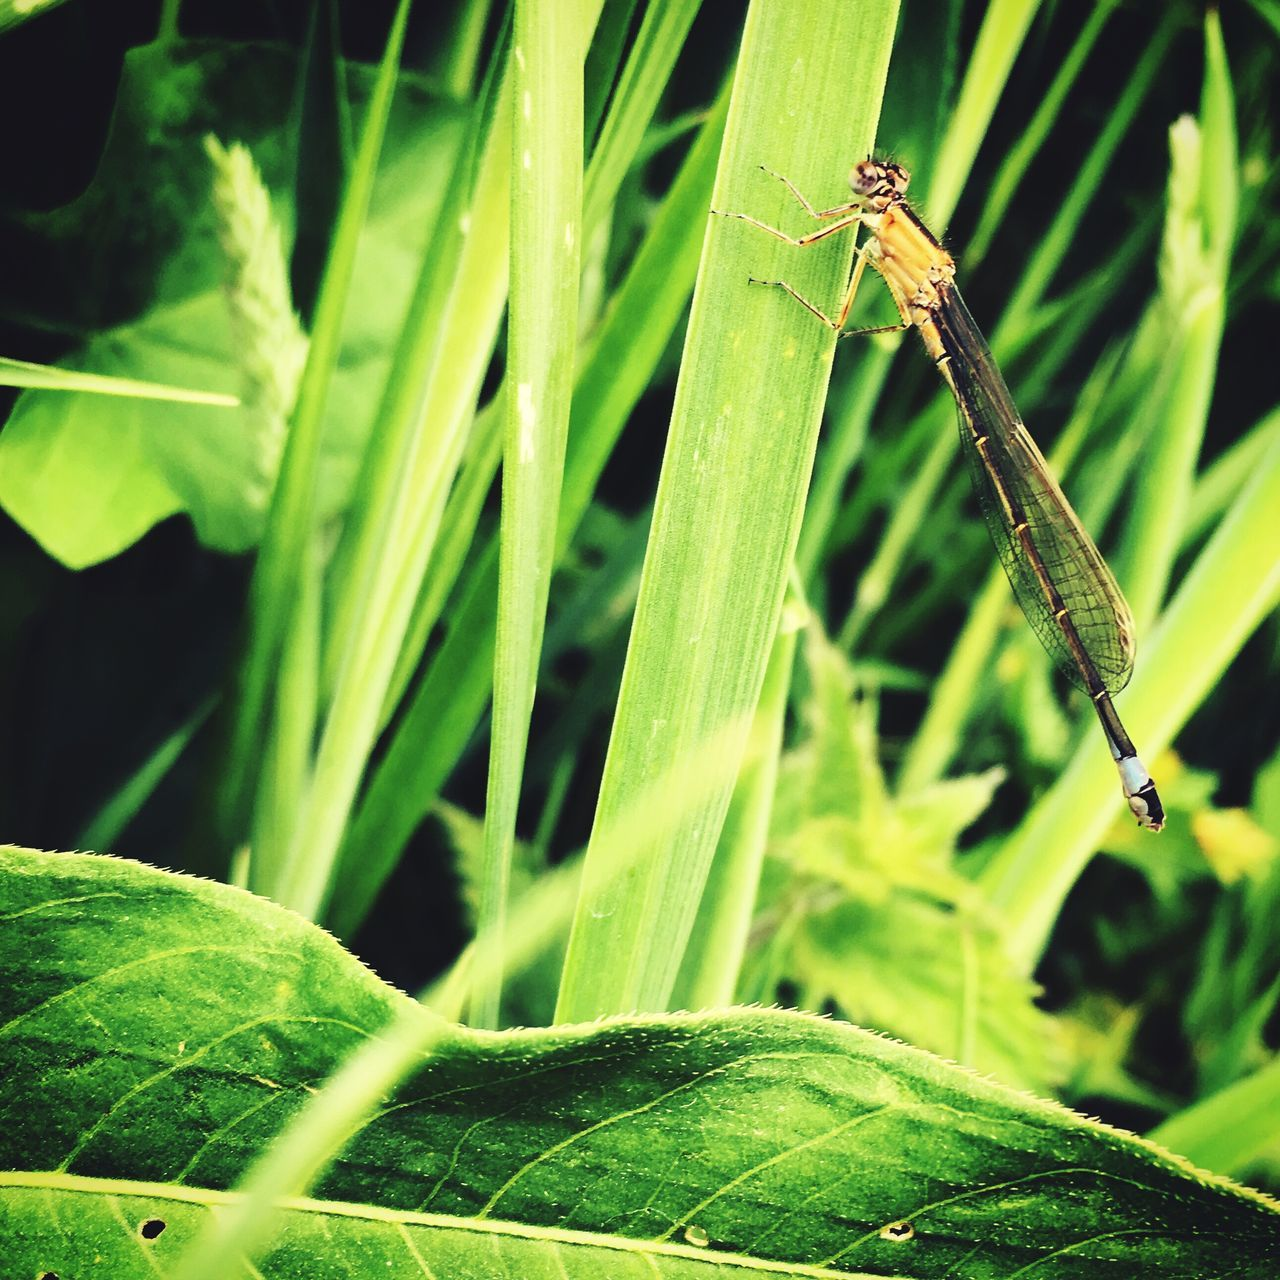 Damselfly Insect Green Color One Animal Leaf Animal Themes Plant Growth Animals In The Wild Nature Day Outdoors Close-up No People Focus On Foreground Grass Damselfly Beauty In Nature The Great Outdoors - 2017 EyeEm Awards